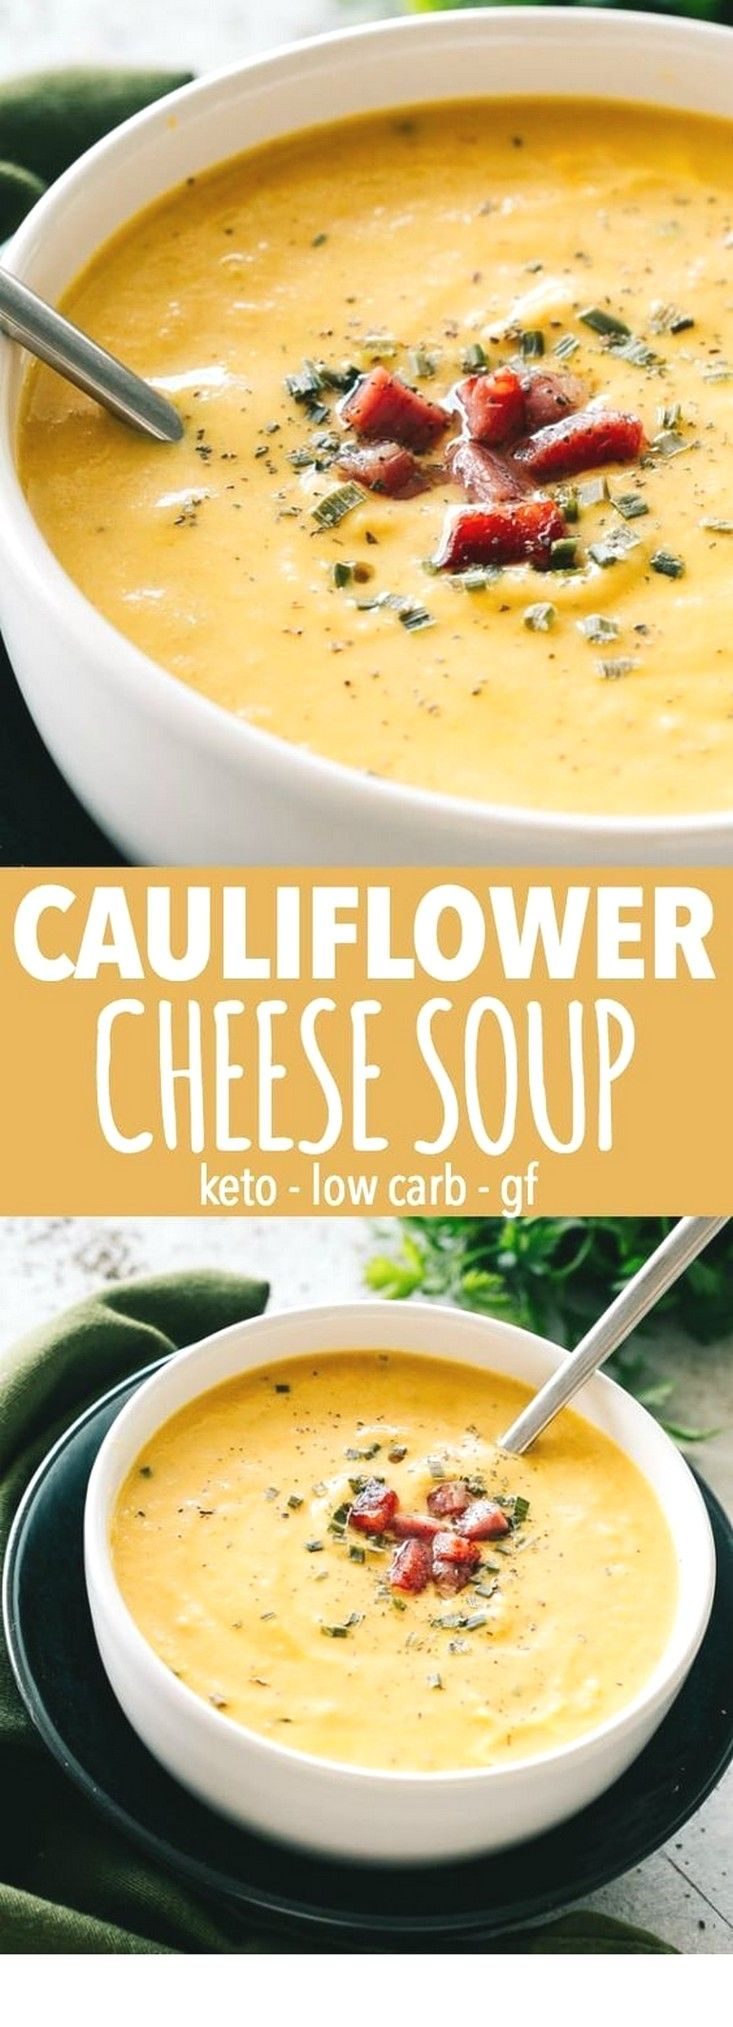 Cauliflower Cheese Soup | Soup Recipes Ideas images